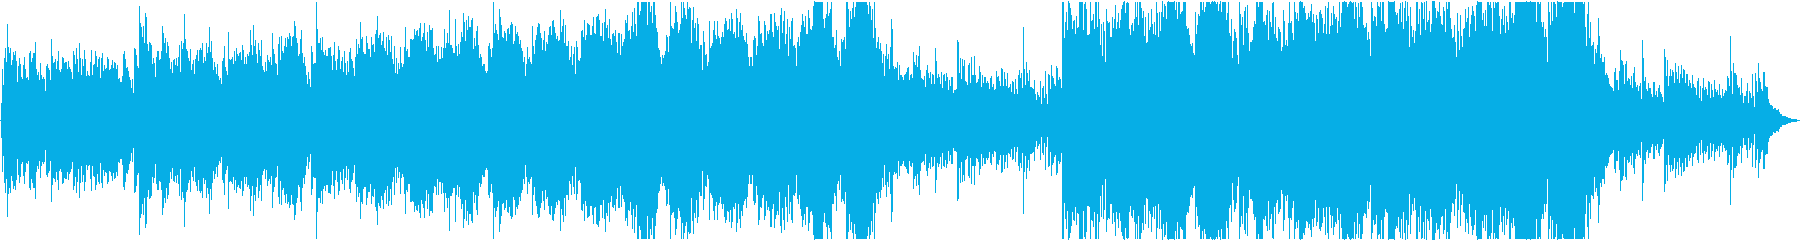 Inspiring piano melody music's reproduced waveform